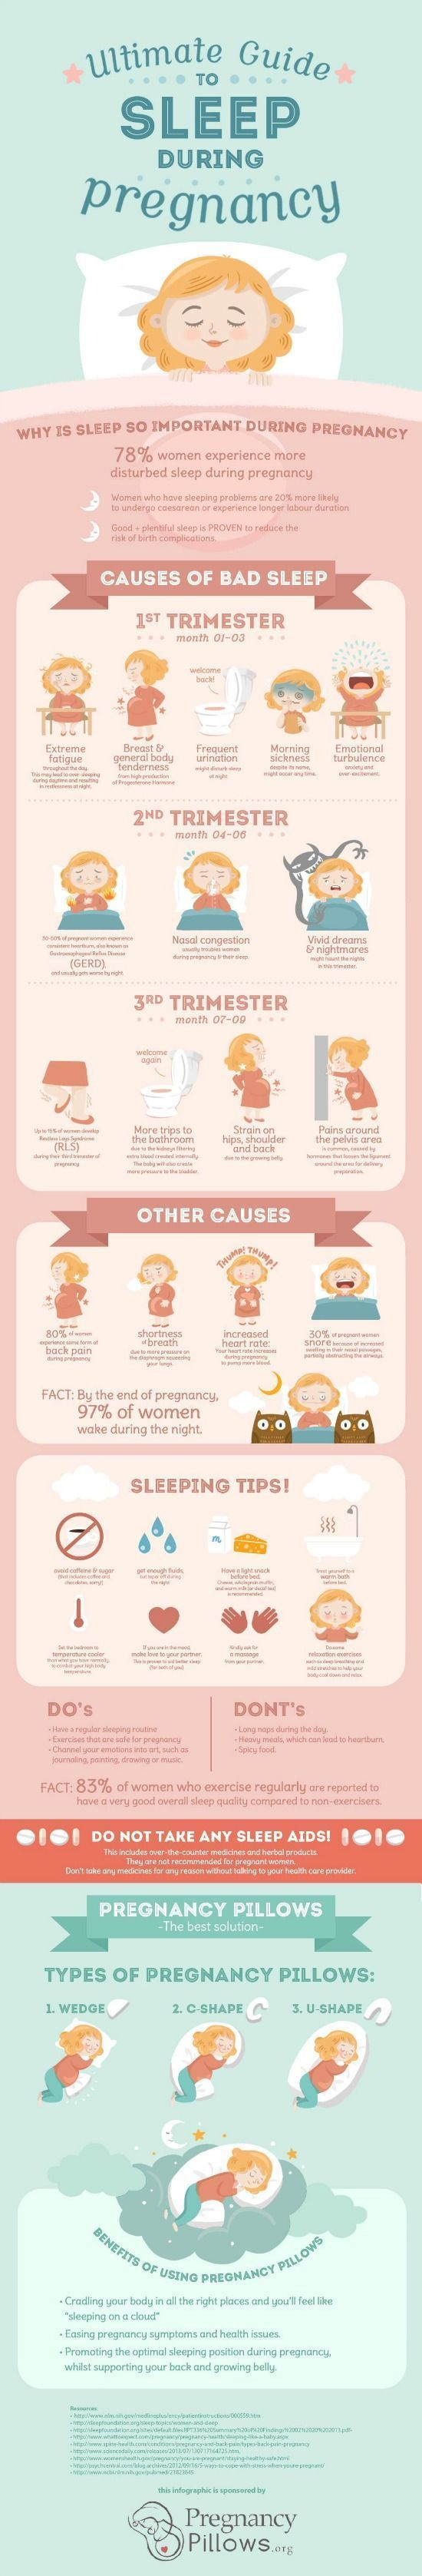 Ultimate Guide to Sleep during Pregnancy #pregnancy #prenancysleeptips